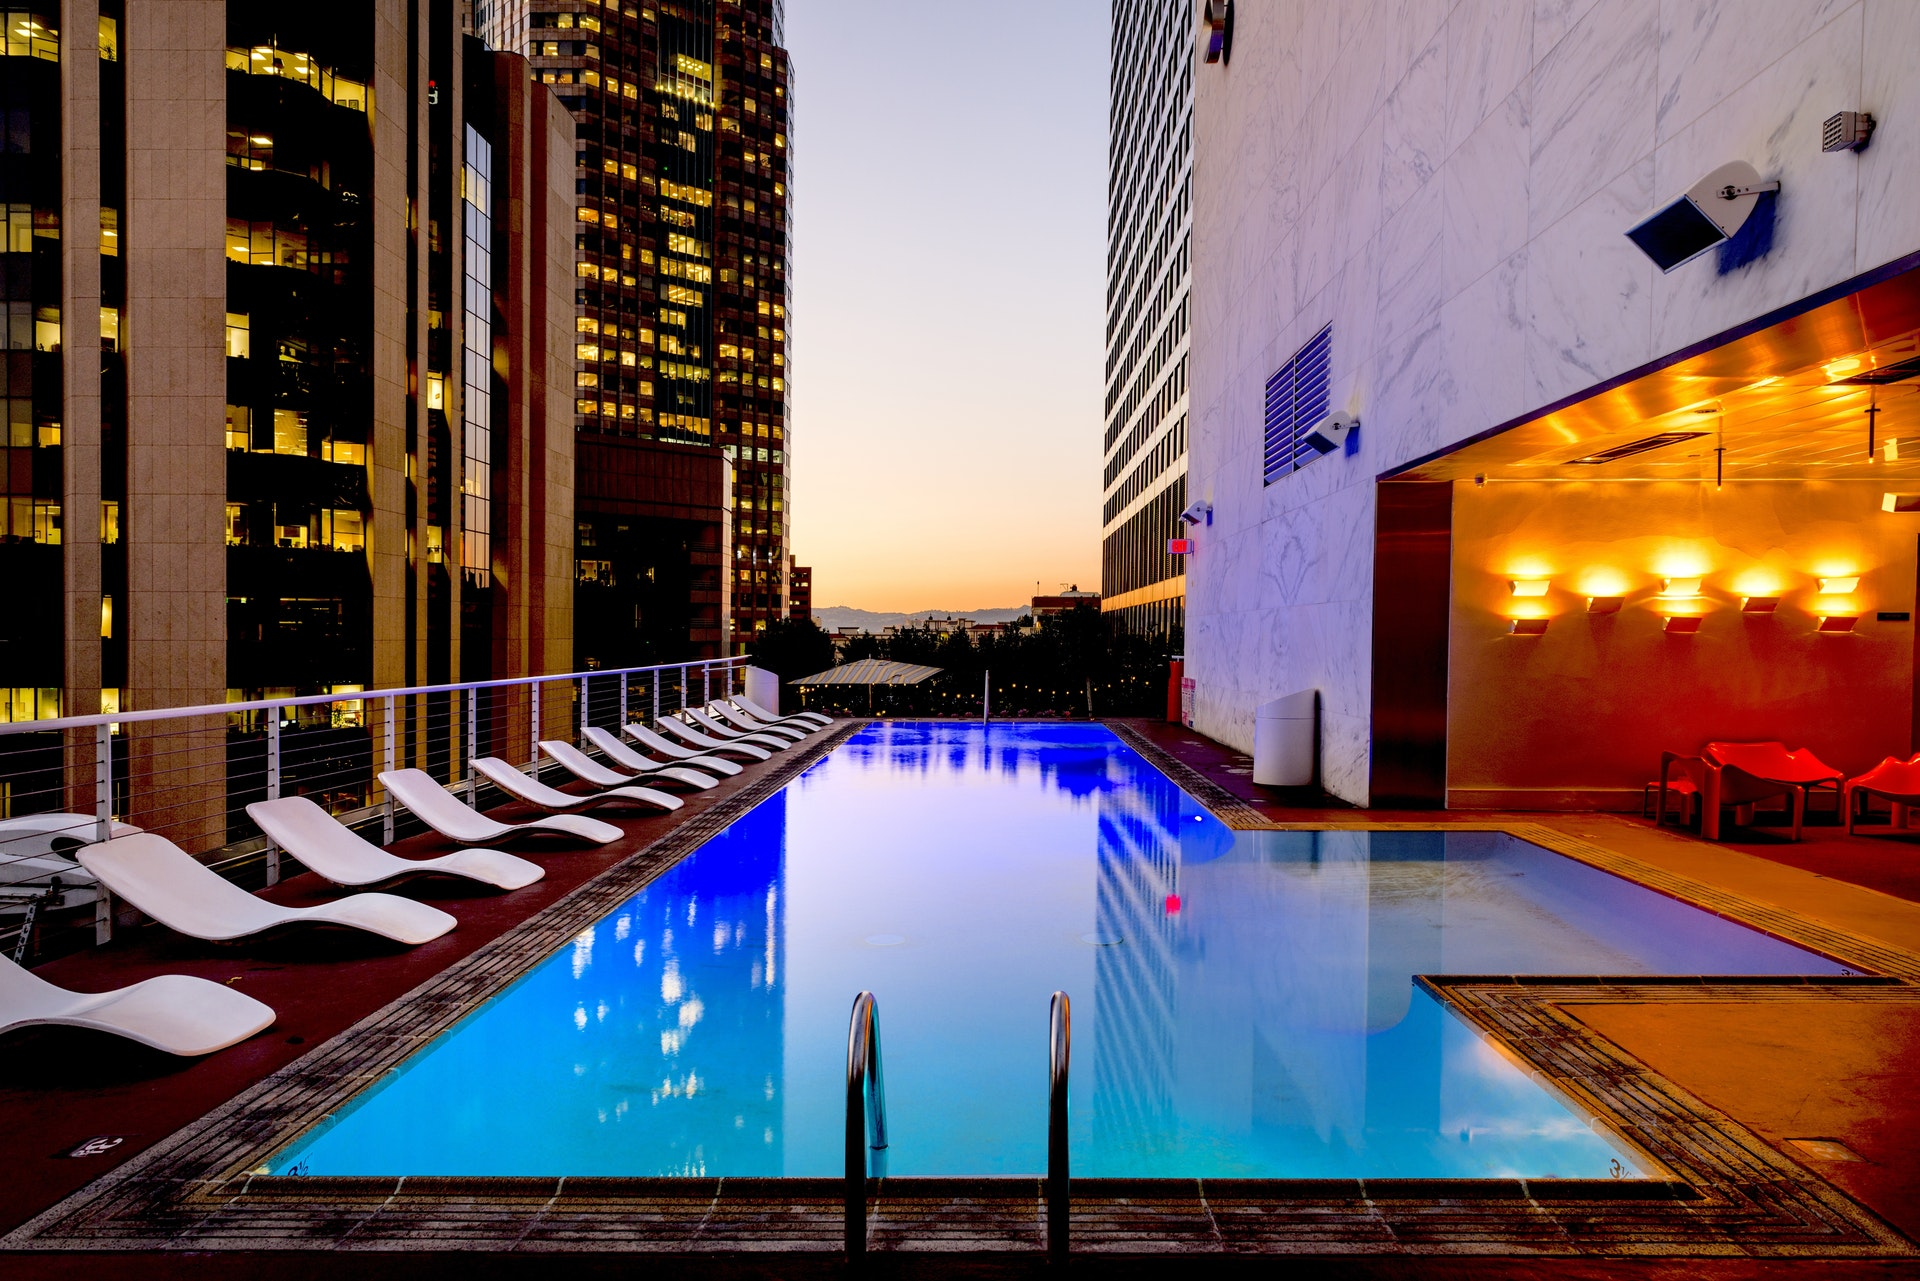 Fantastic San Diego hotels to stay in